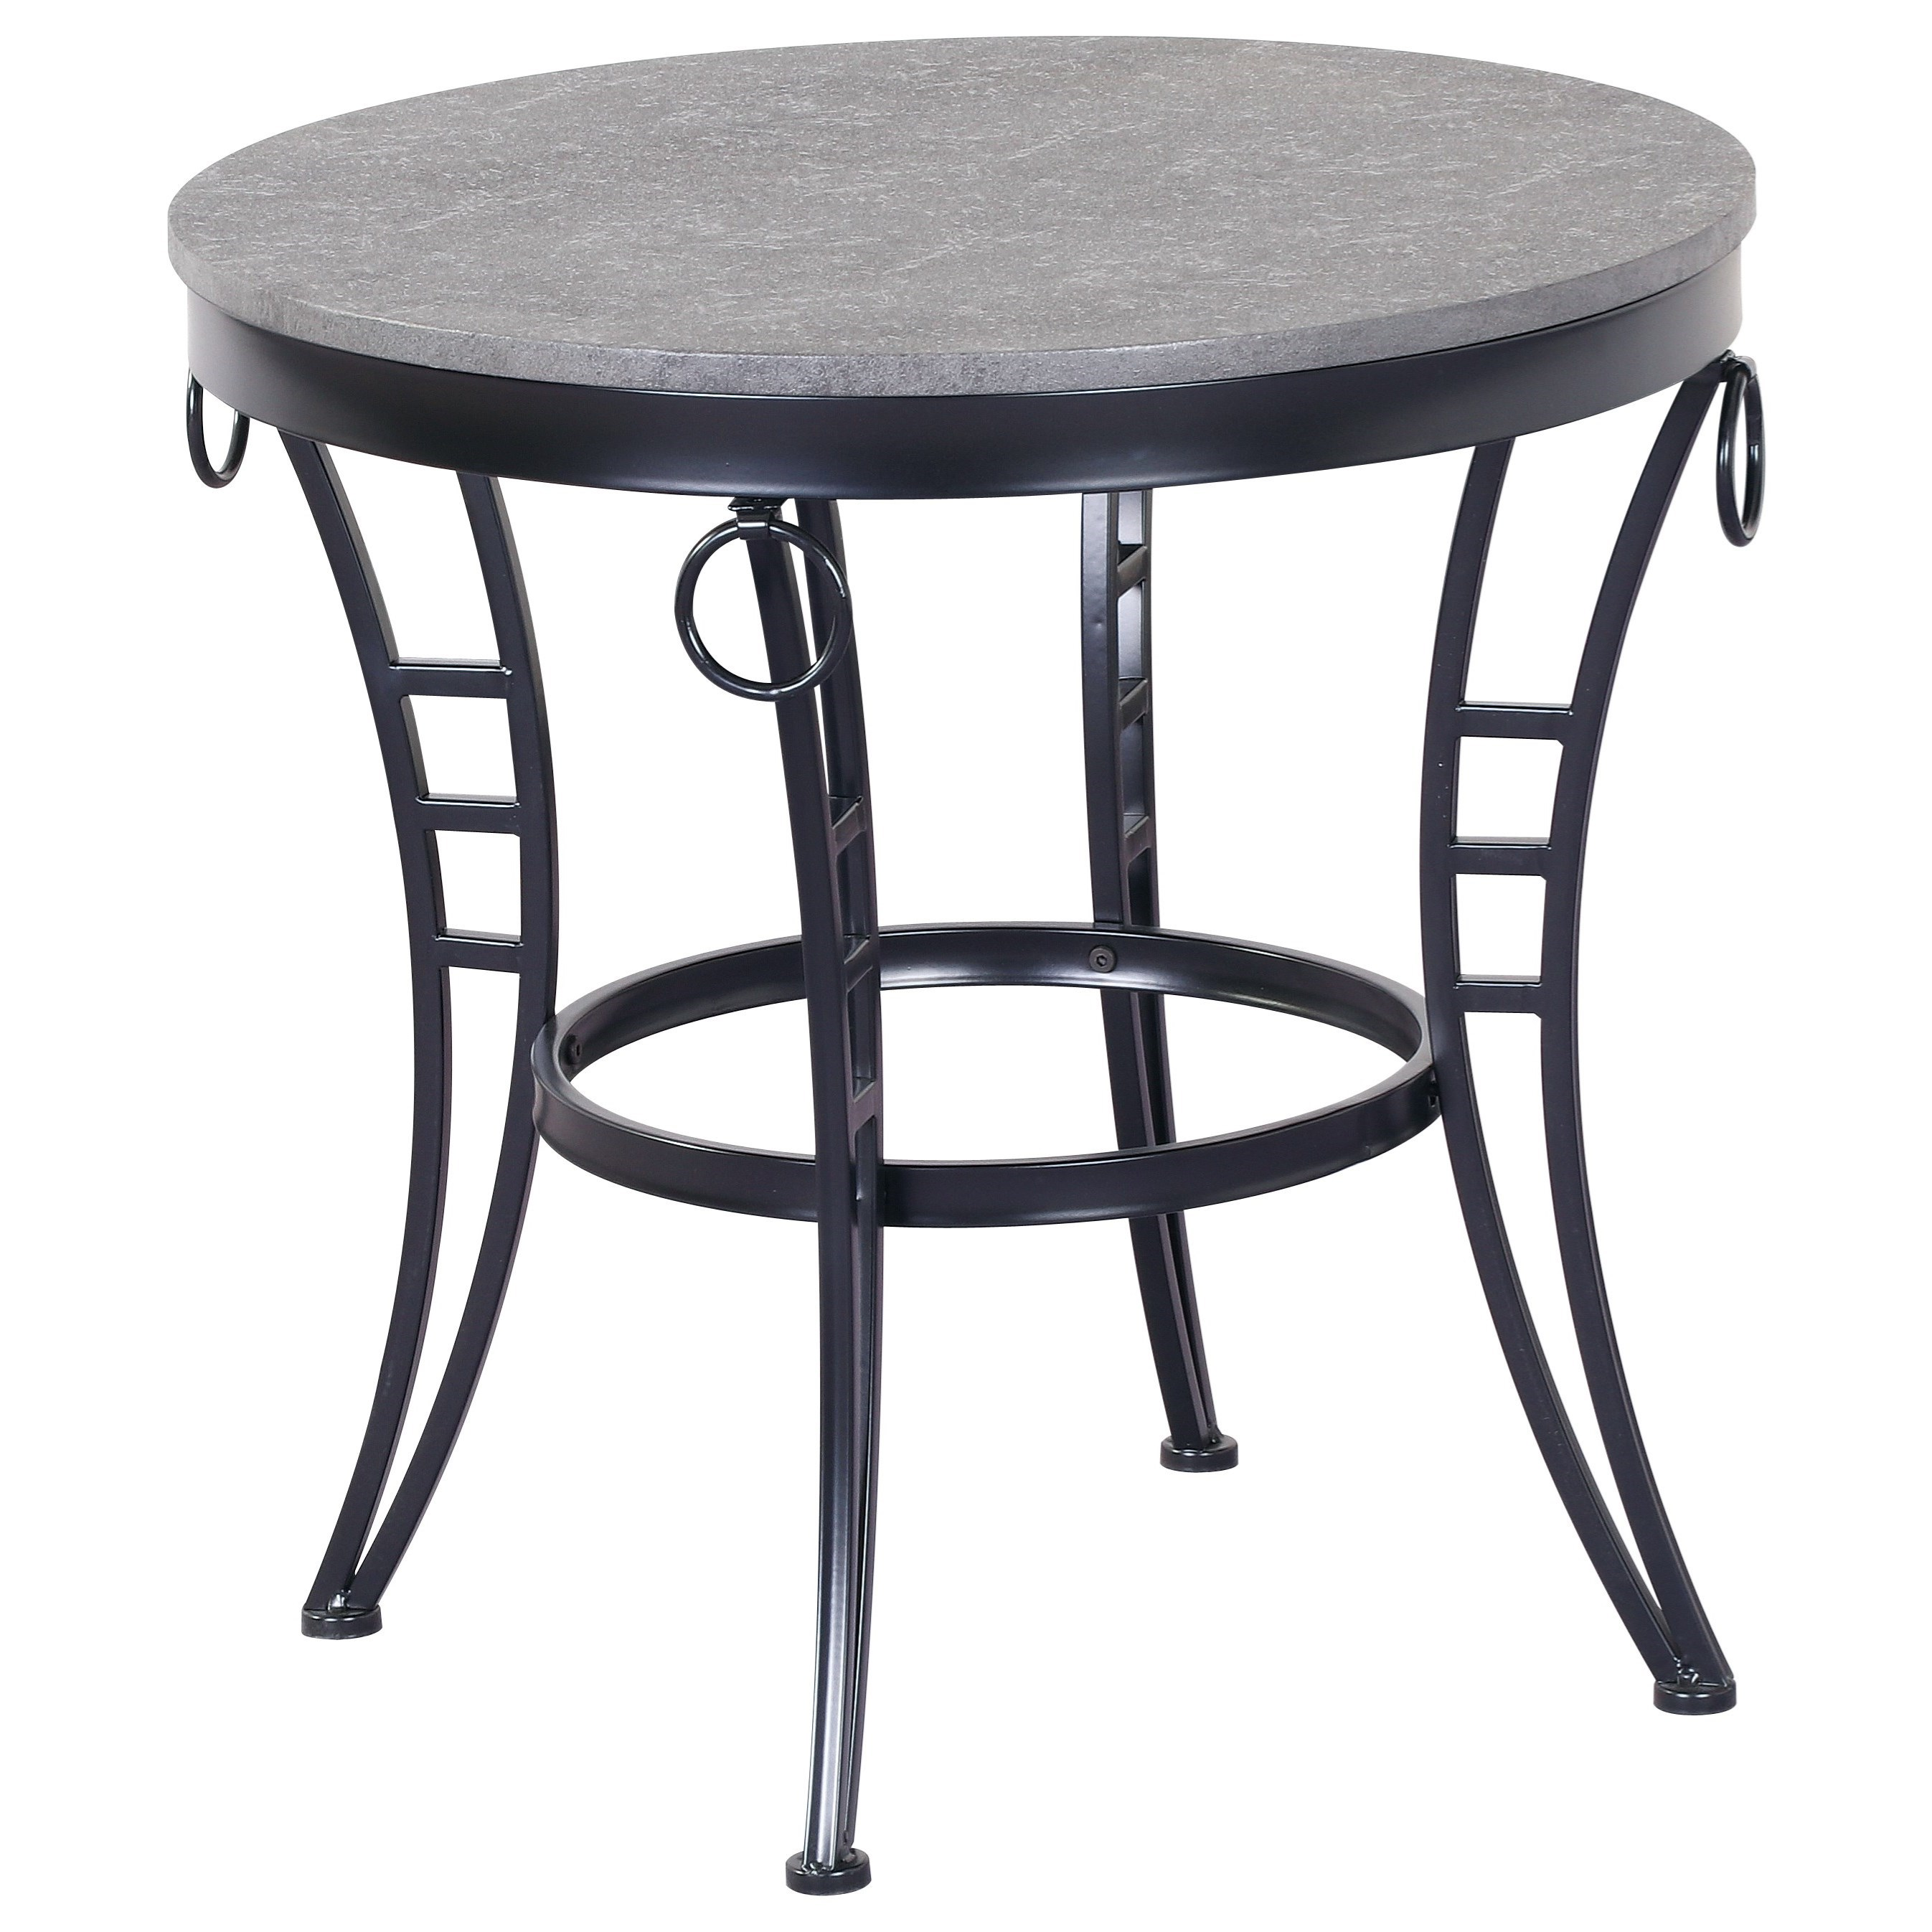 Emmerson 23.5'' Round End Table by Emerald at Rife's Home Furniture